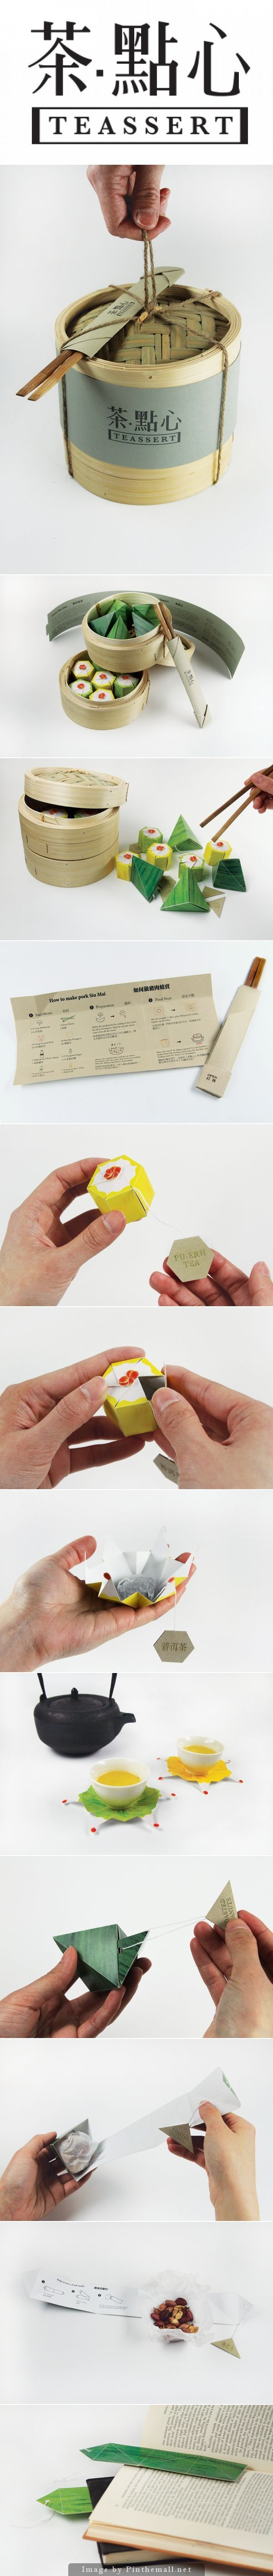 Too pretty not to share the entire Teassert #packaging pin curated by Packaging Diva PD - created via https://www.behance.net/gallery/Teassert/15883085